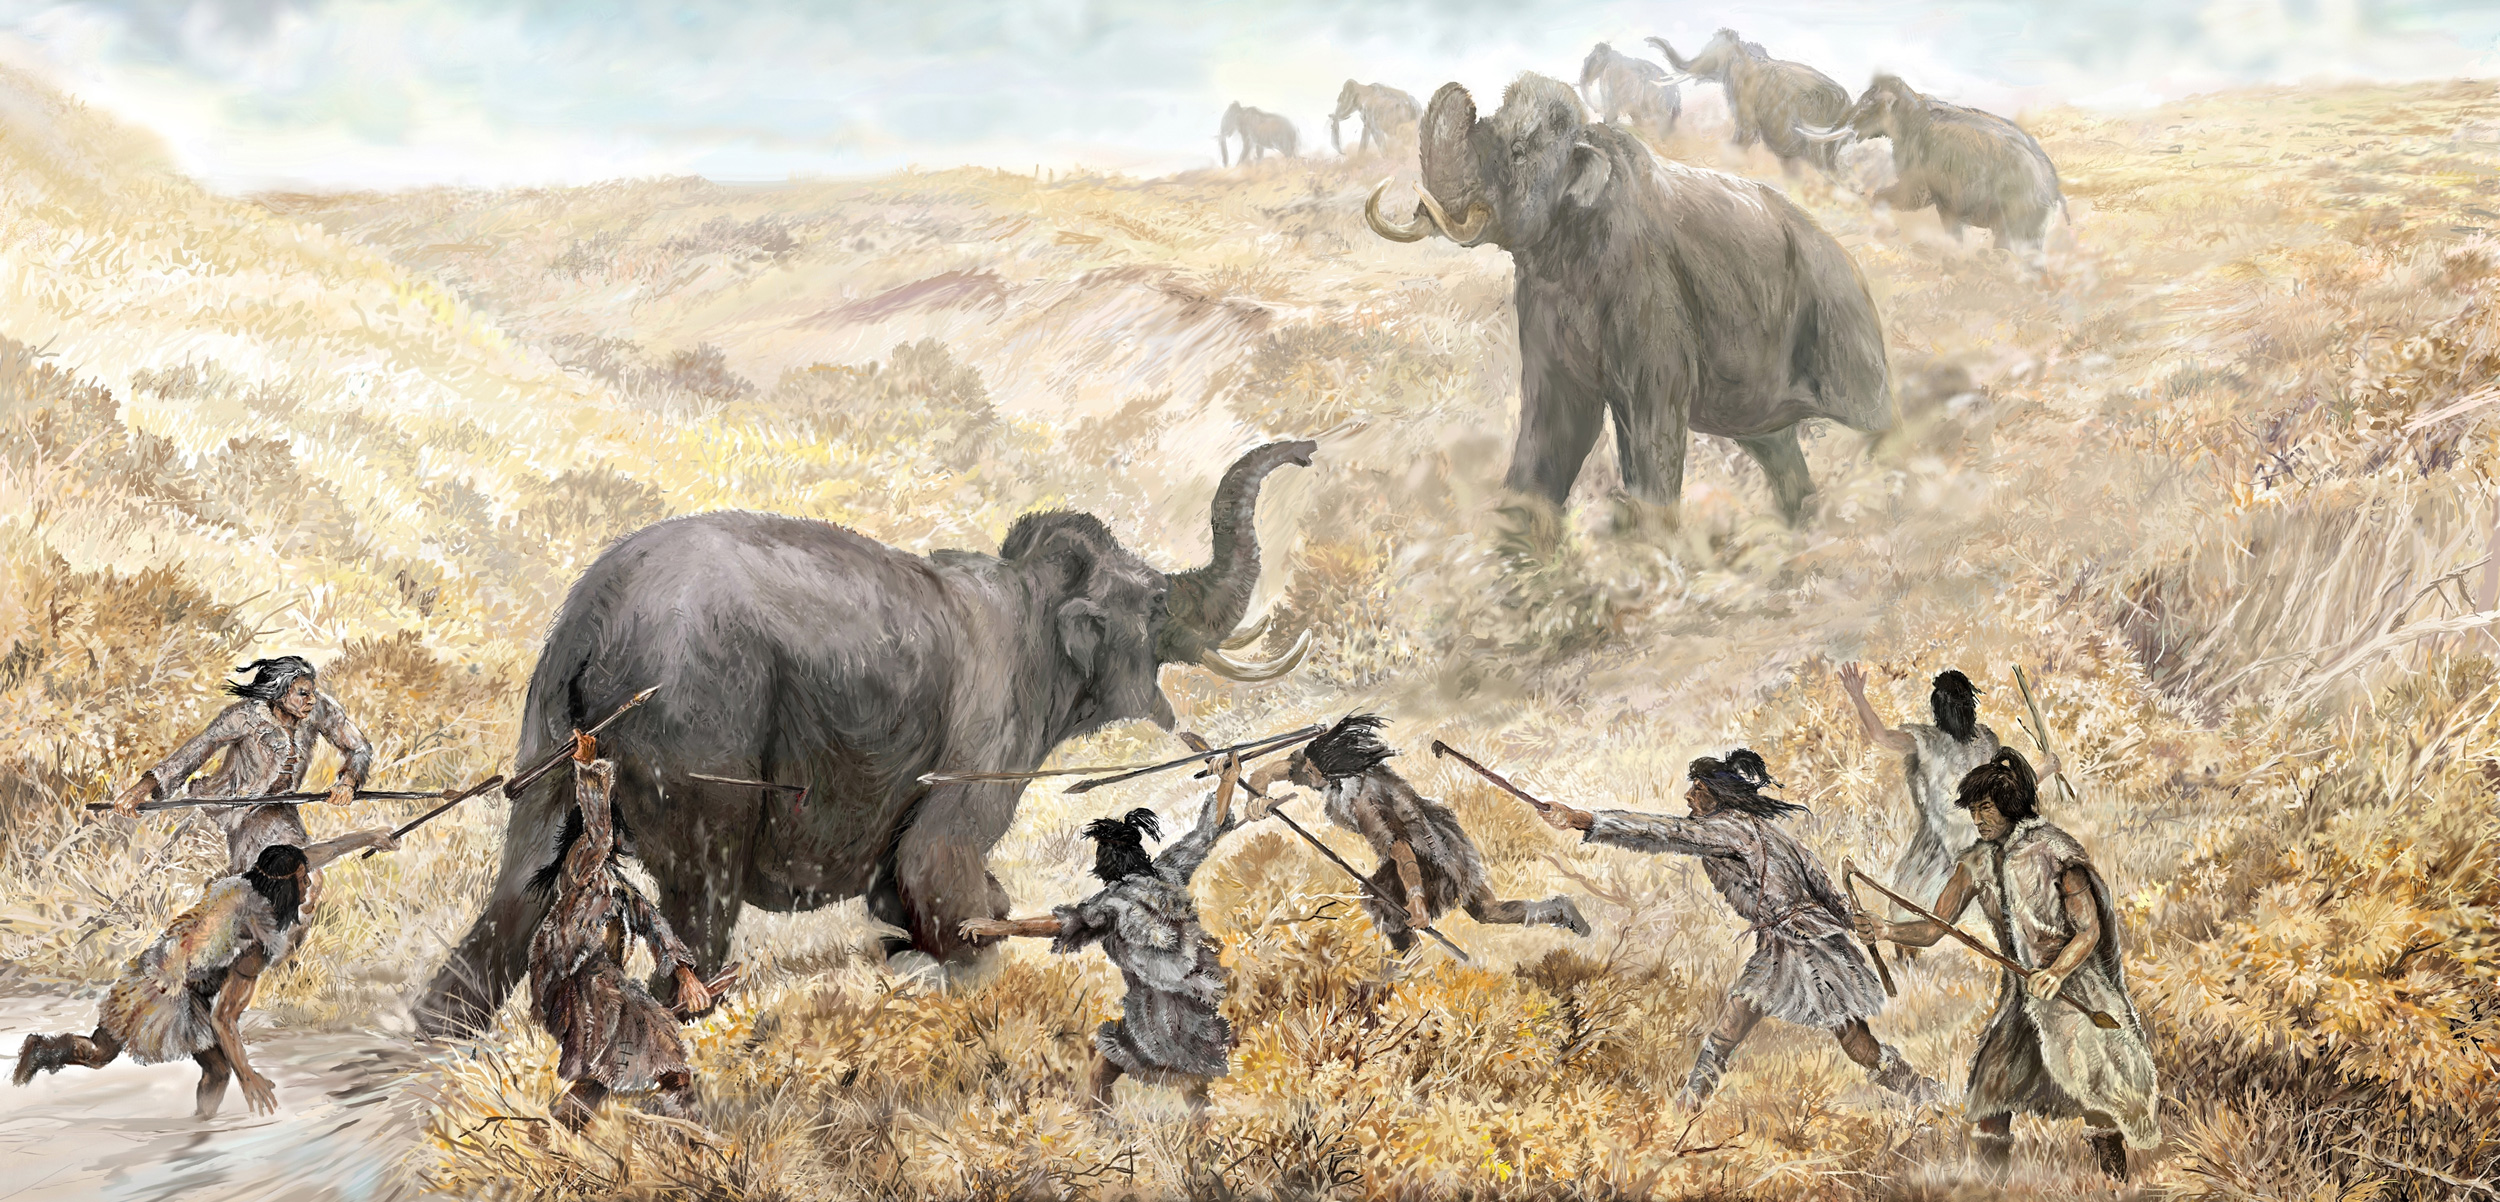 Clovis hunters cut off the escape of a wooly mammoth near the end of the last ice age. For decades, archaeologists thought that Asian migrants first reached the Americas around 13,000 years ago, and swiftly migrated southward to what is now the United States. Their descendants, the Clovis people, were said to be the first Americans. Illustration by Field Museum Library/Getty Images